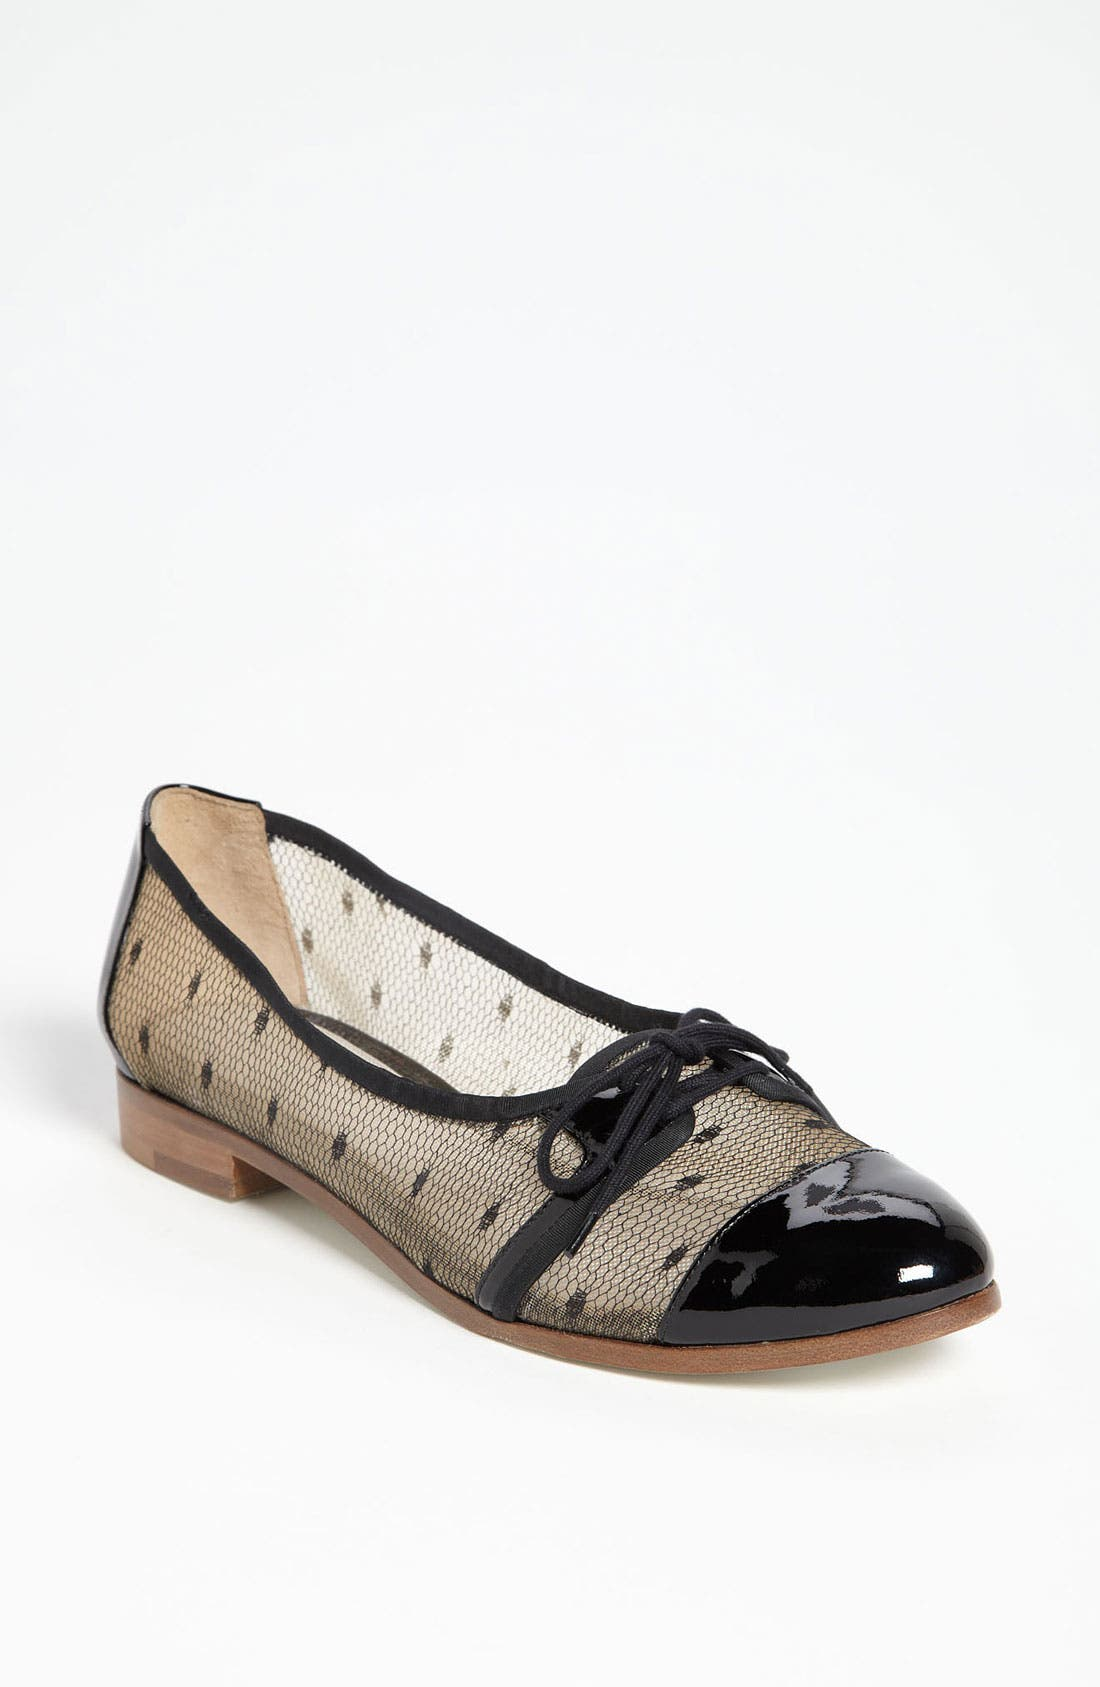 Main Image - Jason Wu 'Dorian' Cap Toe Loafer